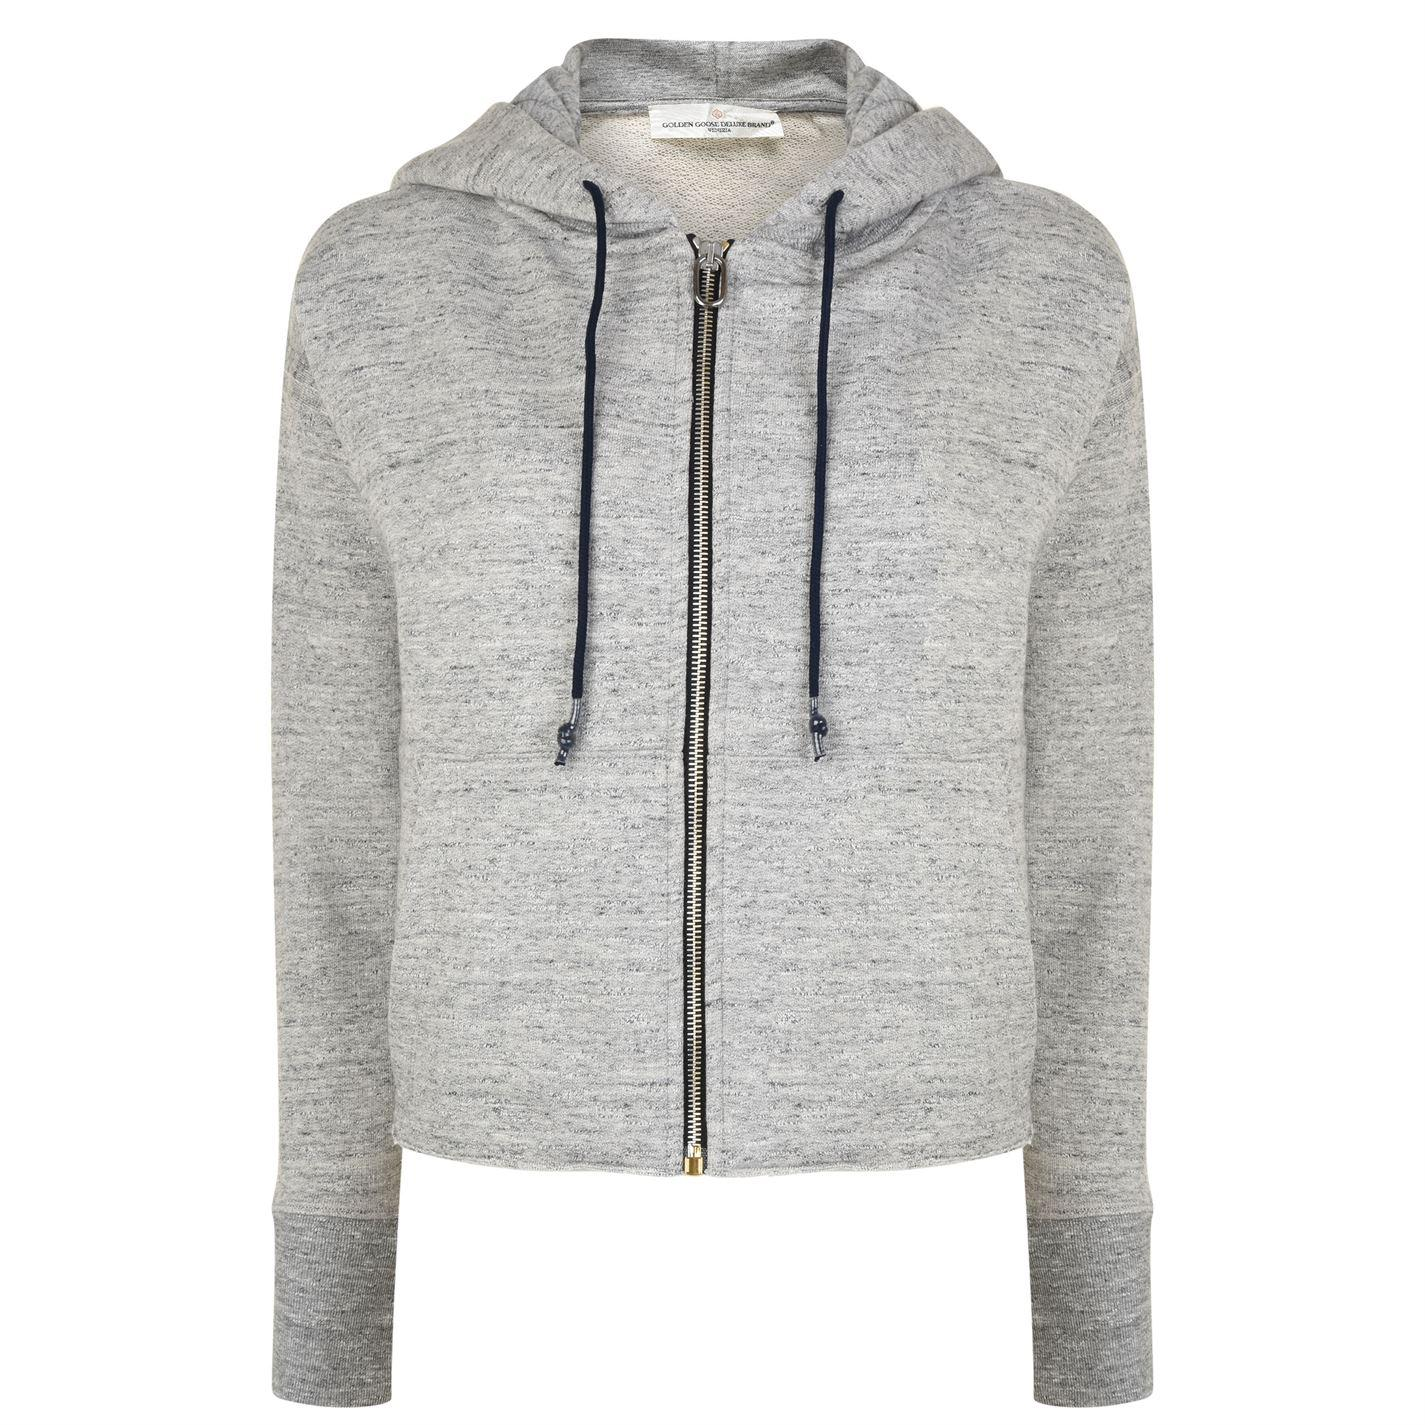 Goose In Deluxe Brand Hooded Lyst Gray Crop Golden Sweatshirt PHwqq5a